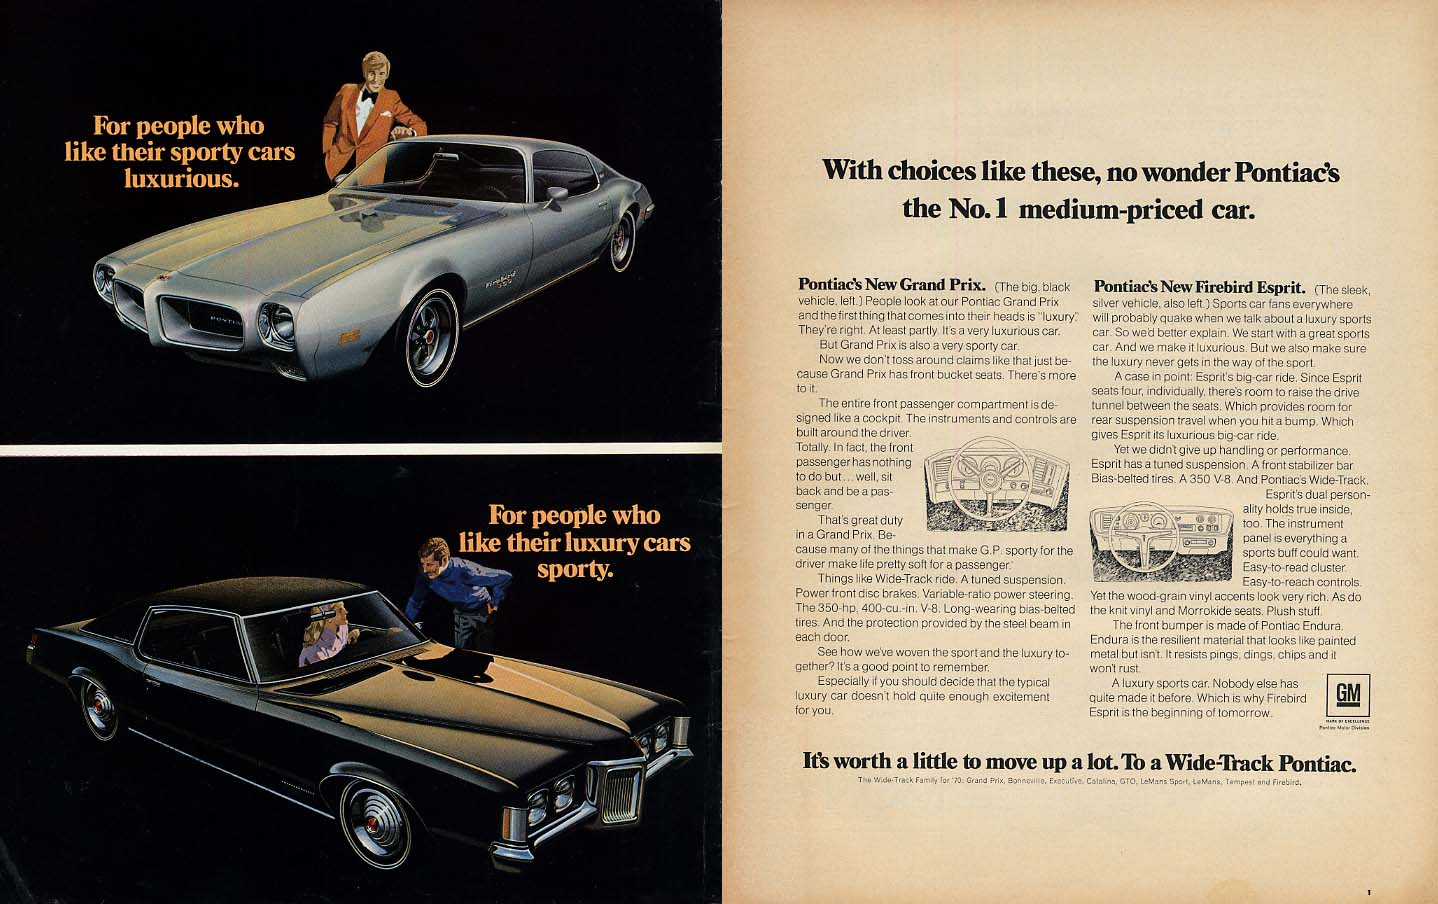 No wonder Pontiac's the No 1 medium-priced car ad 1970 Firebird Grand Prix L